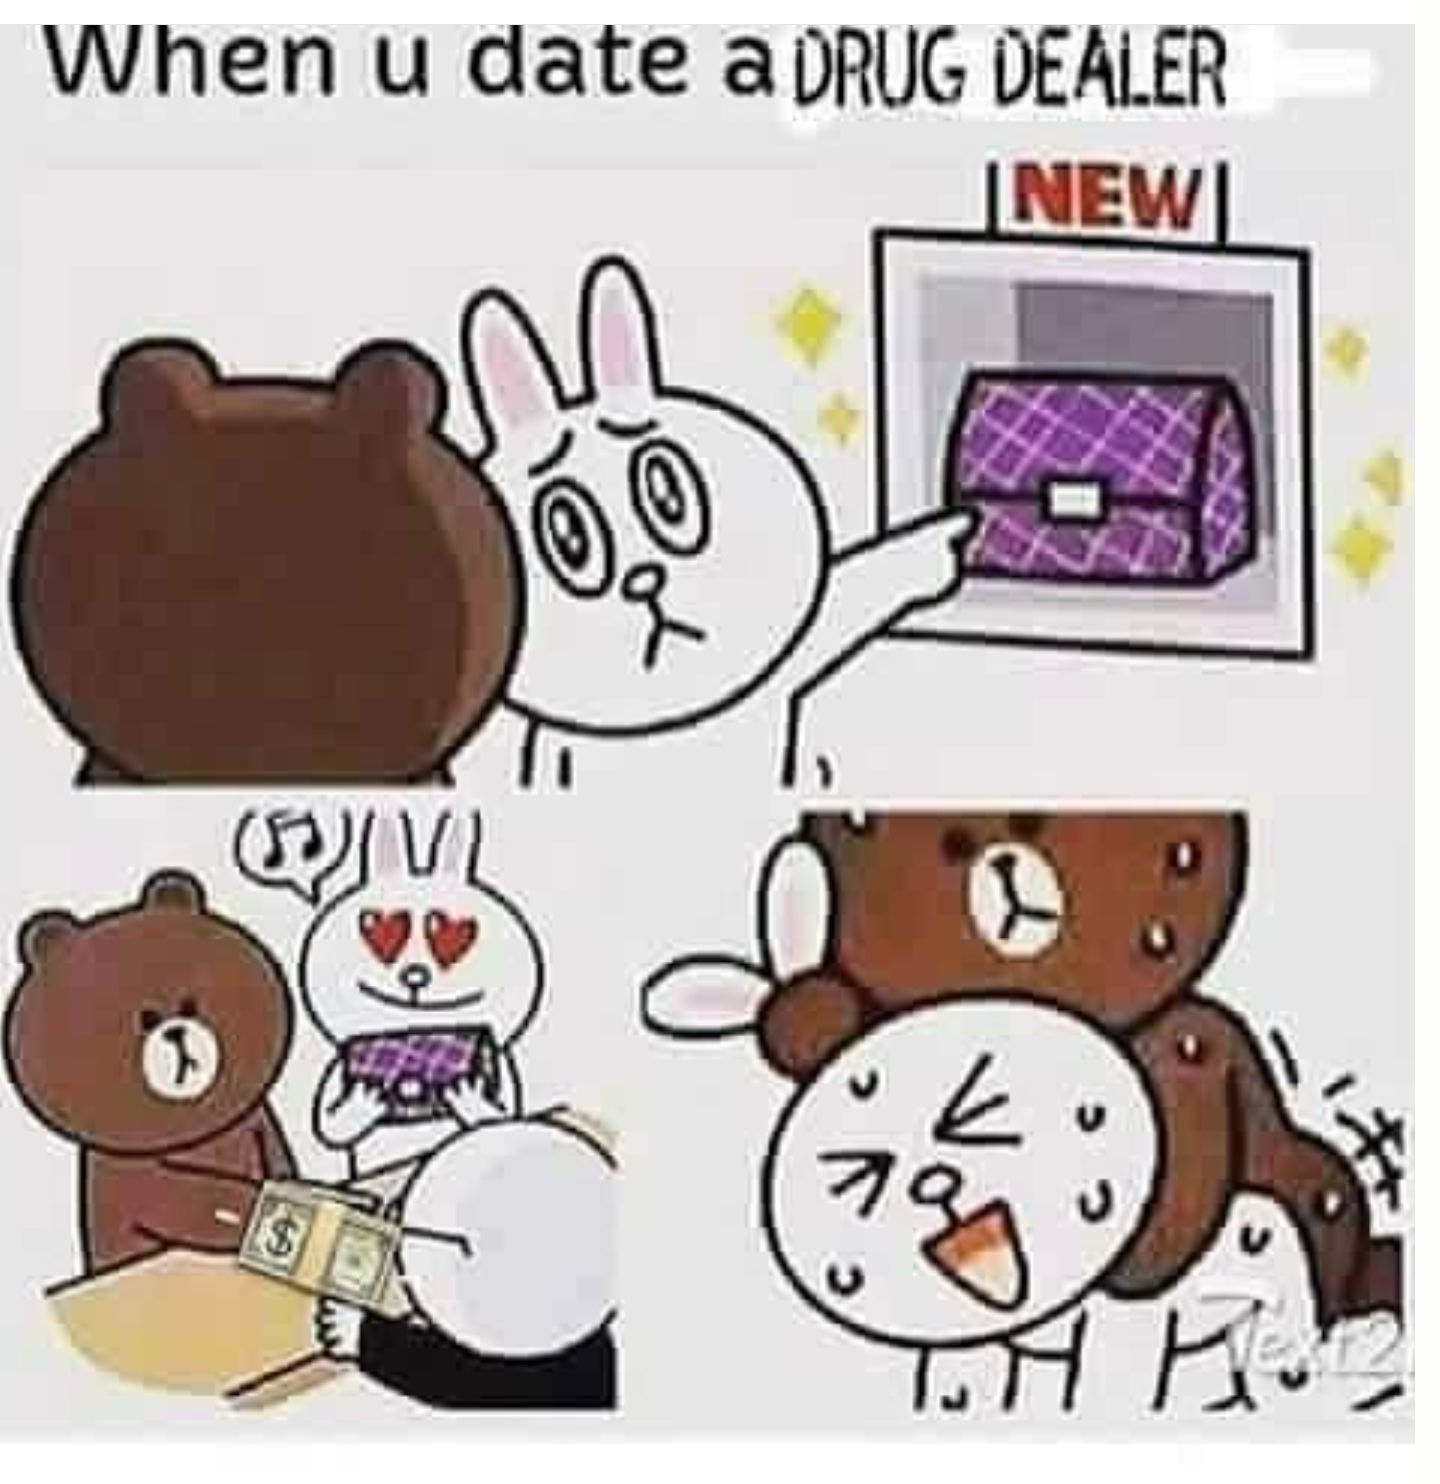 Rules to dating a drug dealer